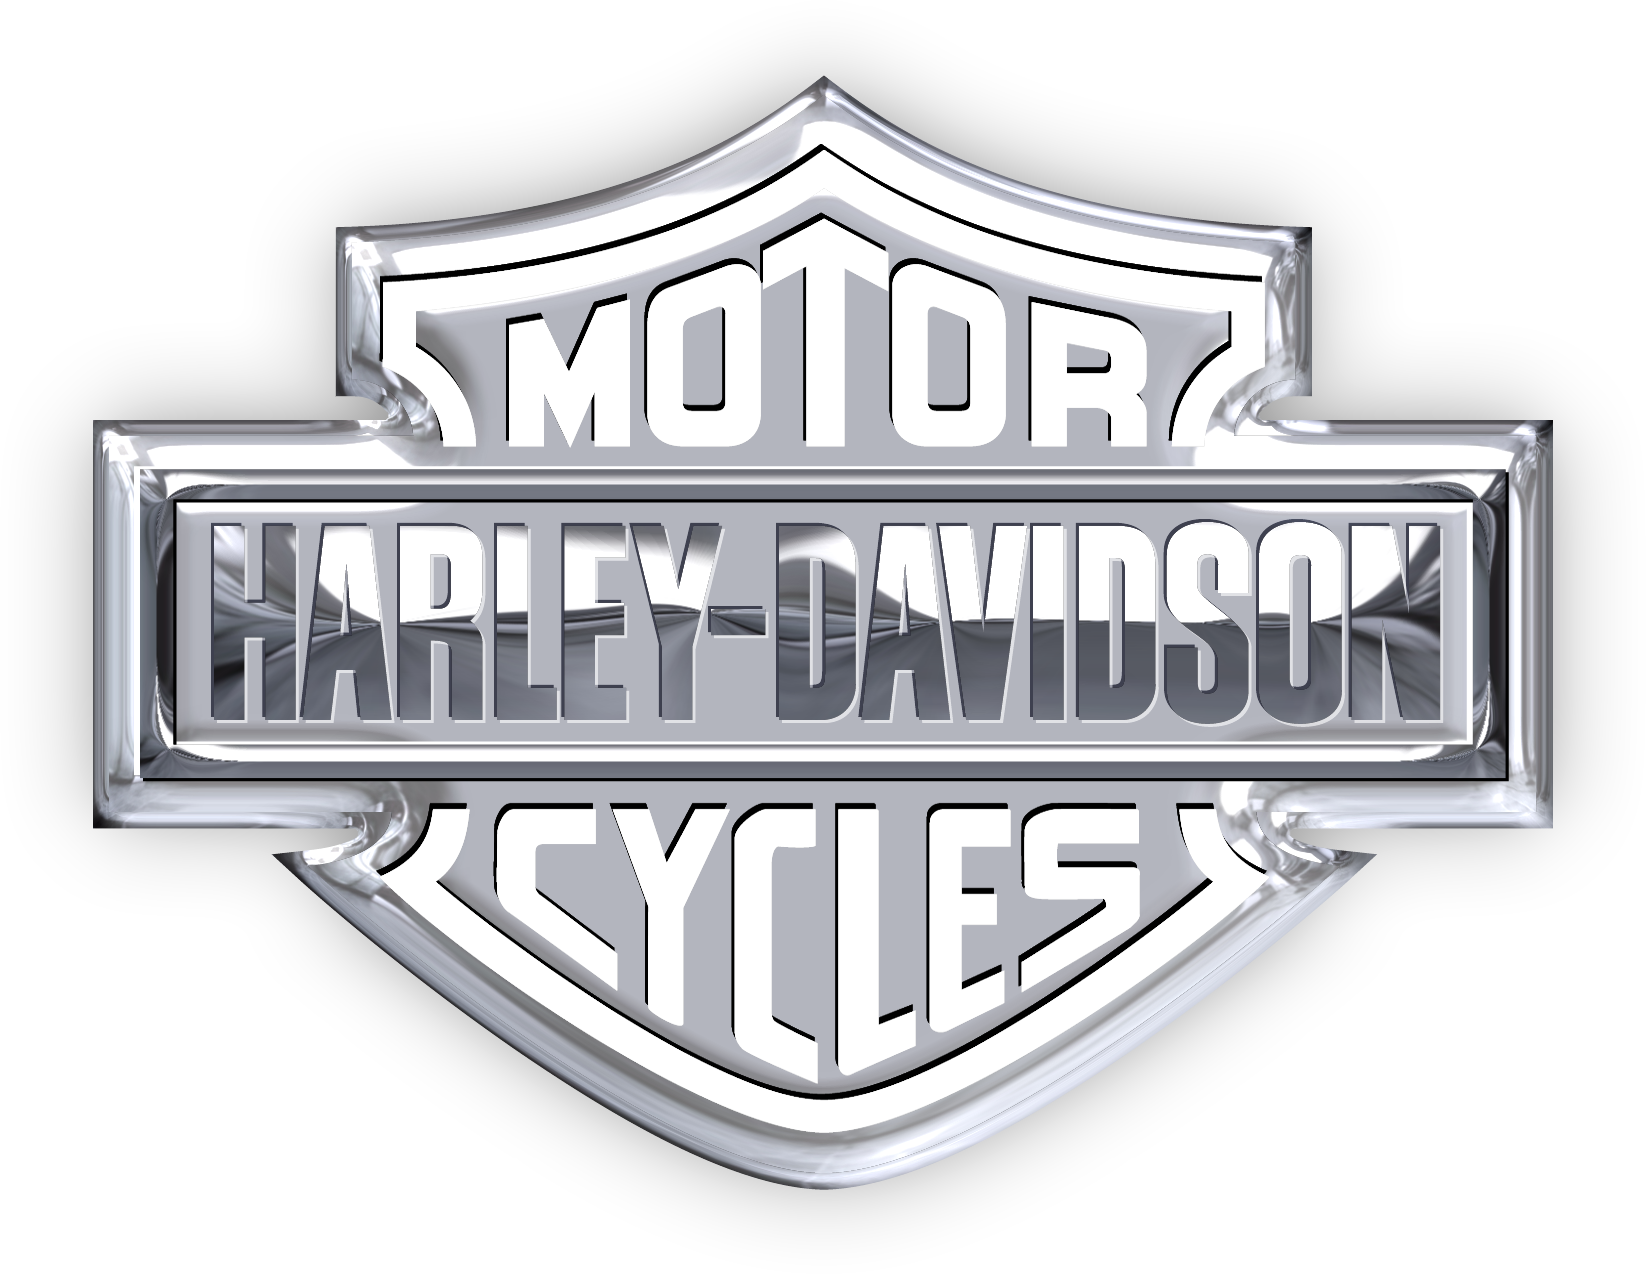 Harley Davidson Logo Transparent PNG Pictures - Free Icons ...